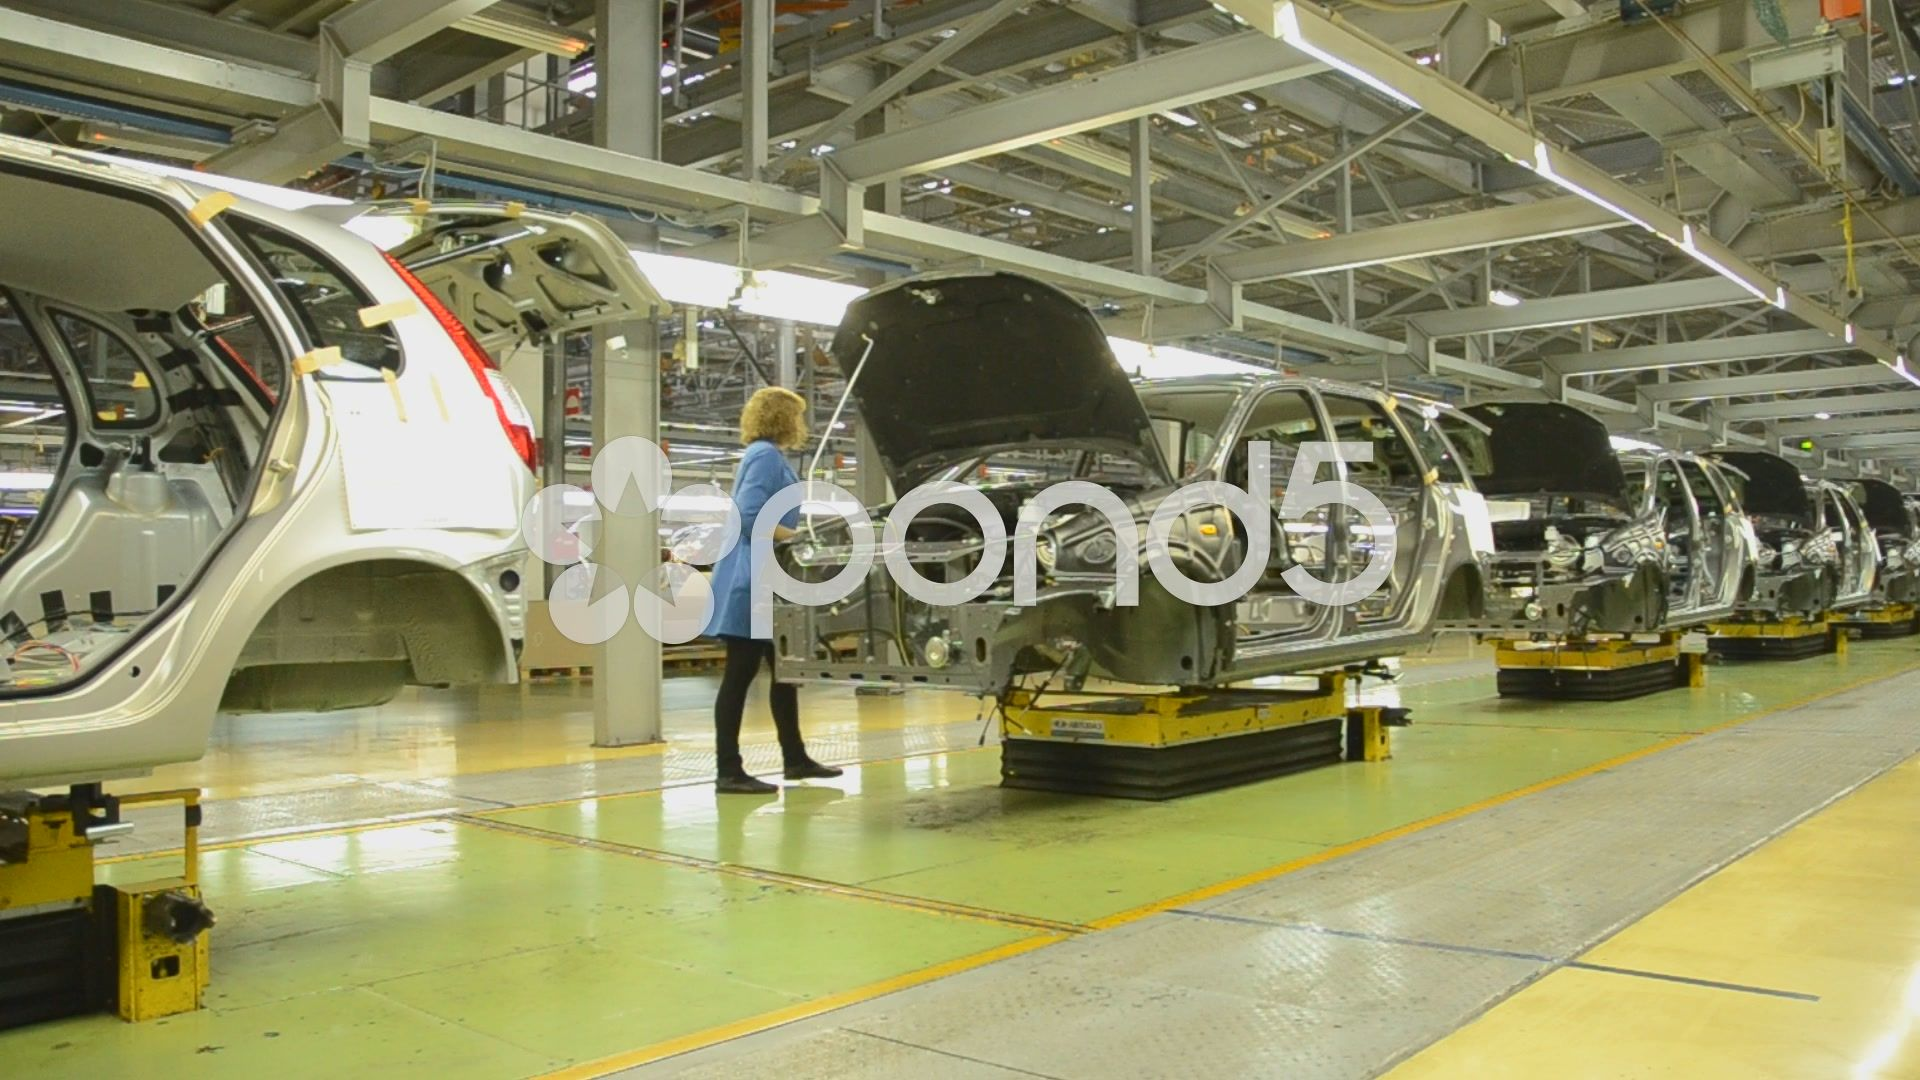 People Work At Assembly Of Cars Lada Kalina On Conveyor Of Factory